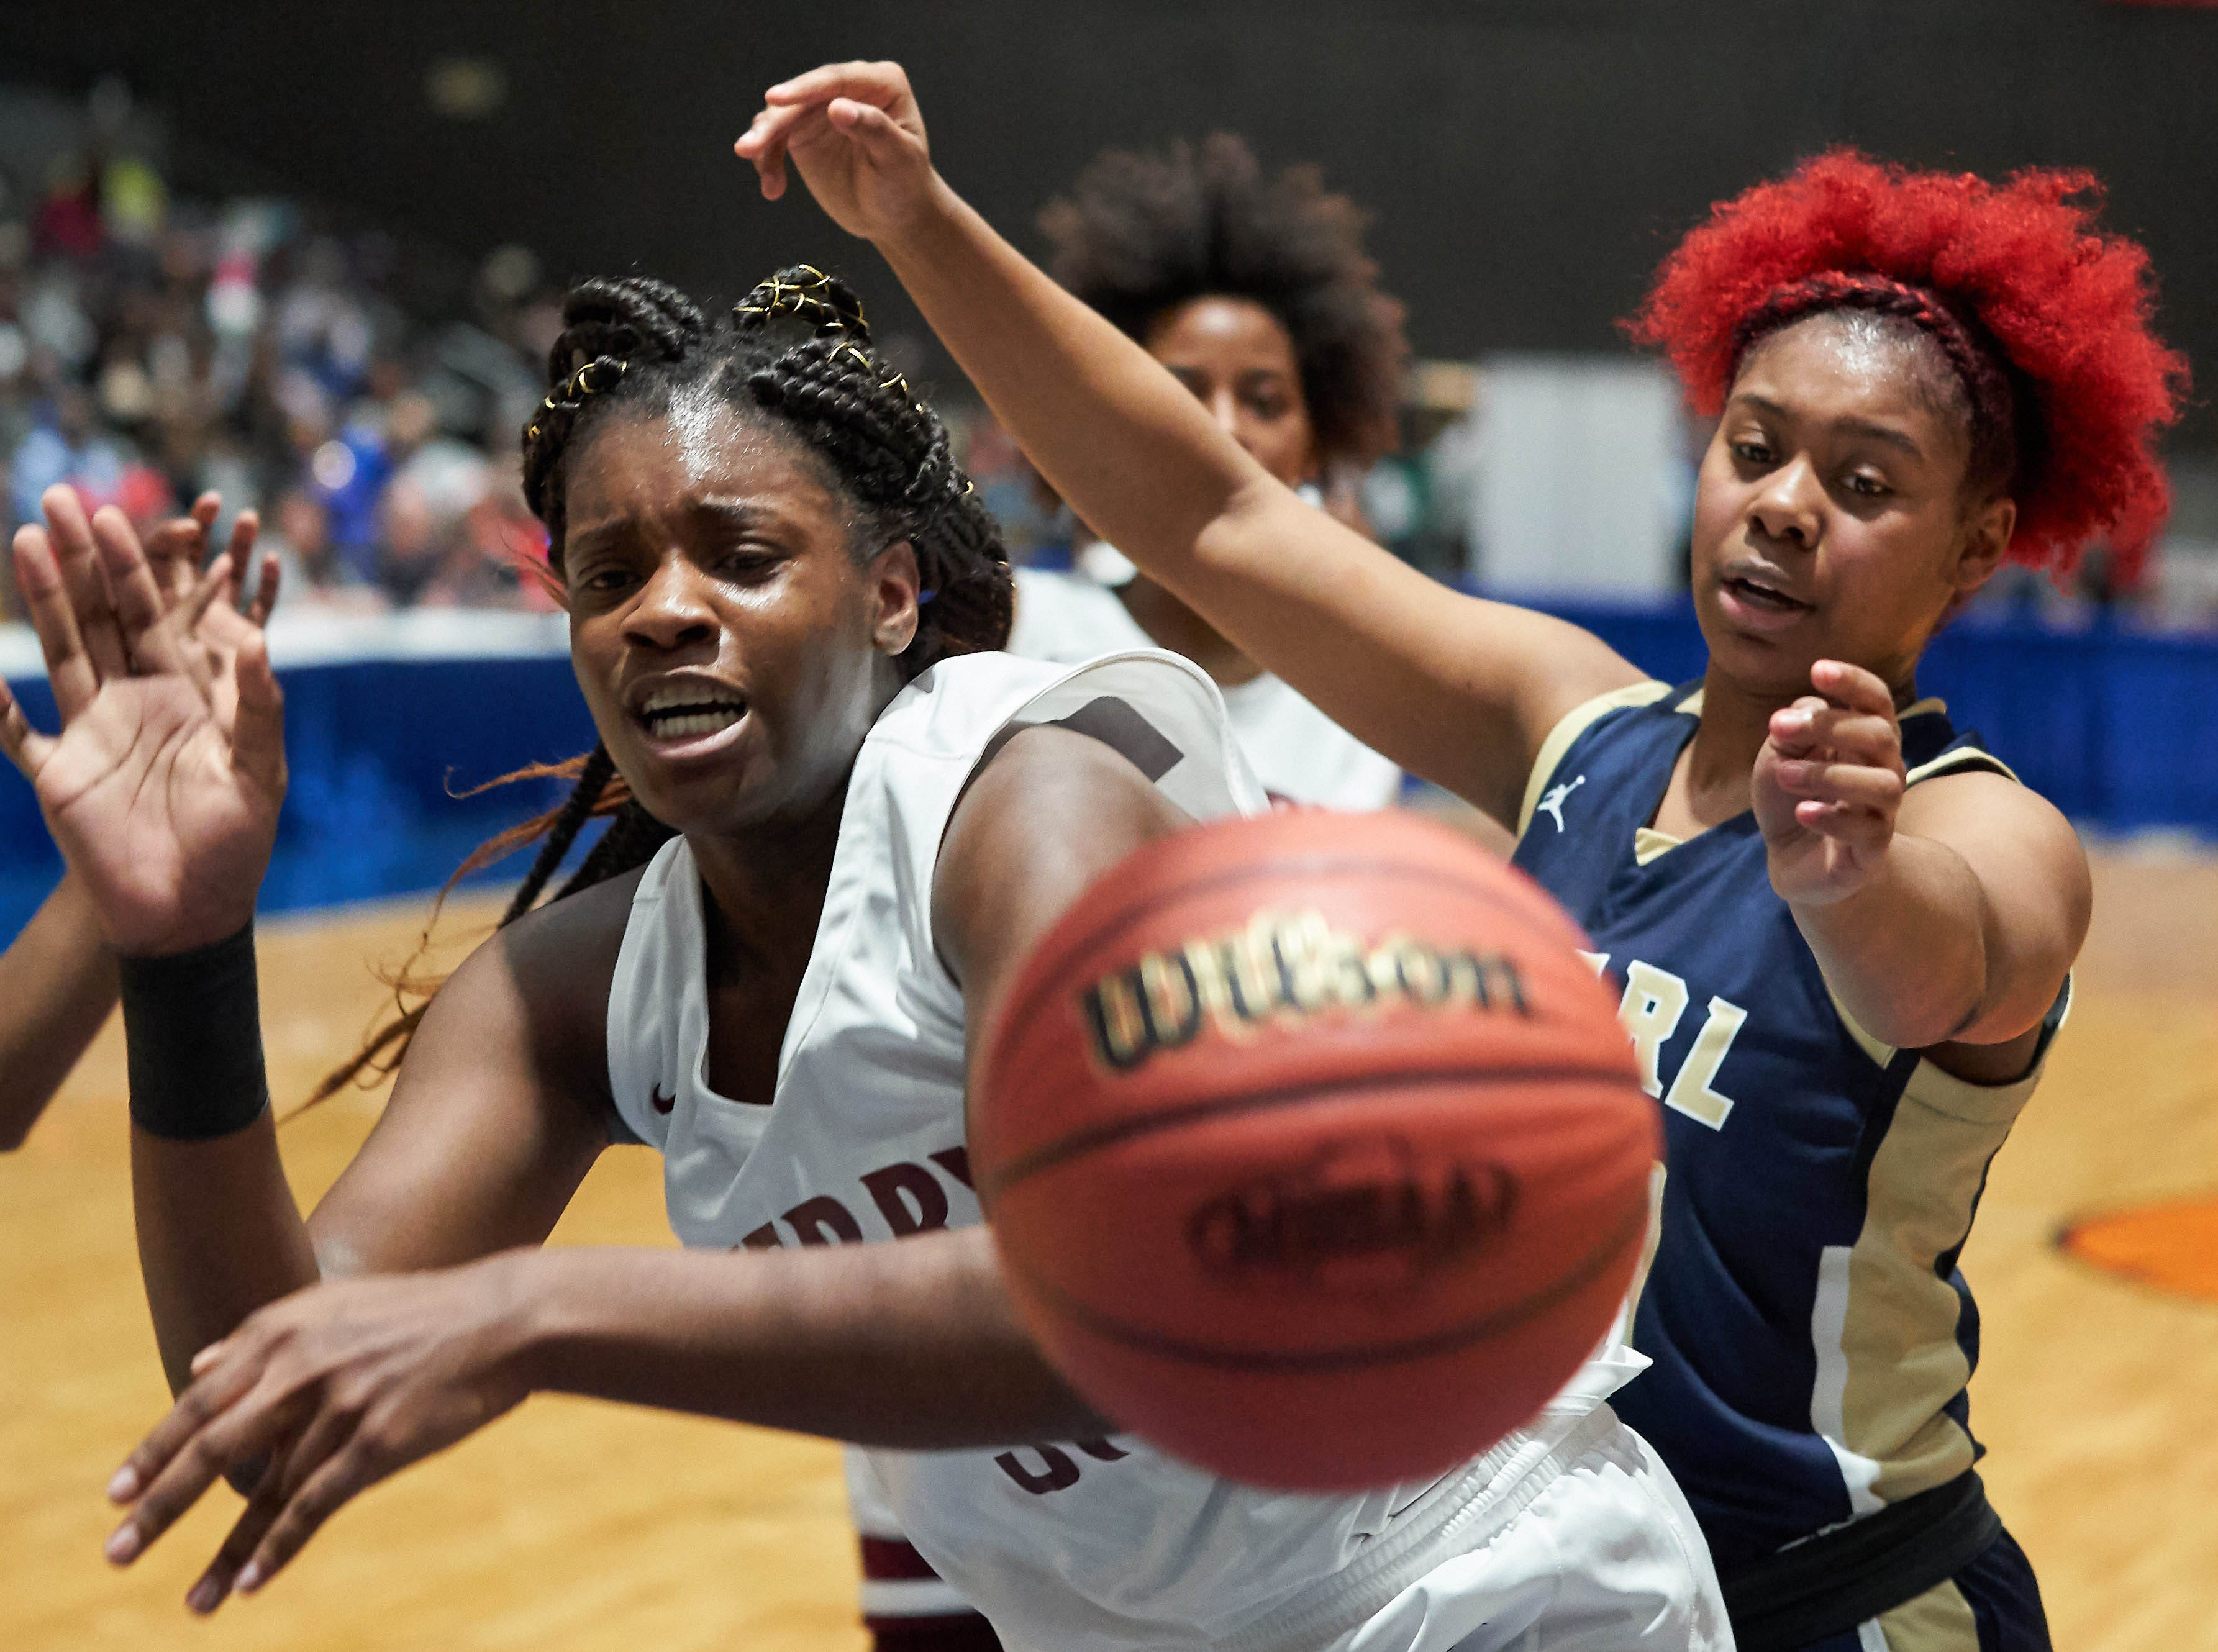 Pearl's Jade Miles (24) and Terry's Bryanna Taylor (31) battle for a loose ball during the MHSAA 6A Girls Basketball Championship Finals held at the Mississippi Coliseum in Jackson, MS, Saturday March 9th, 2019.(Bob Smith)